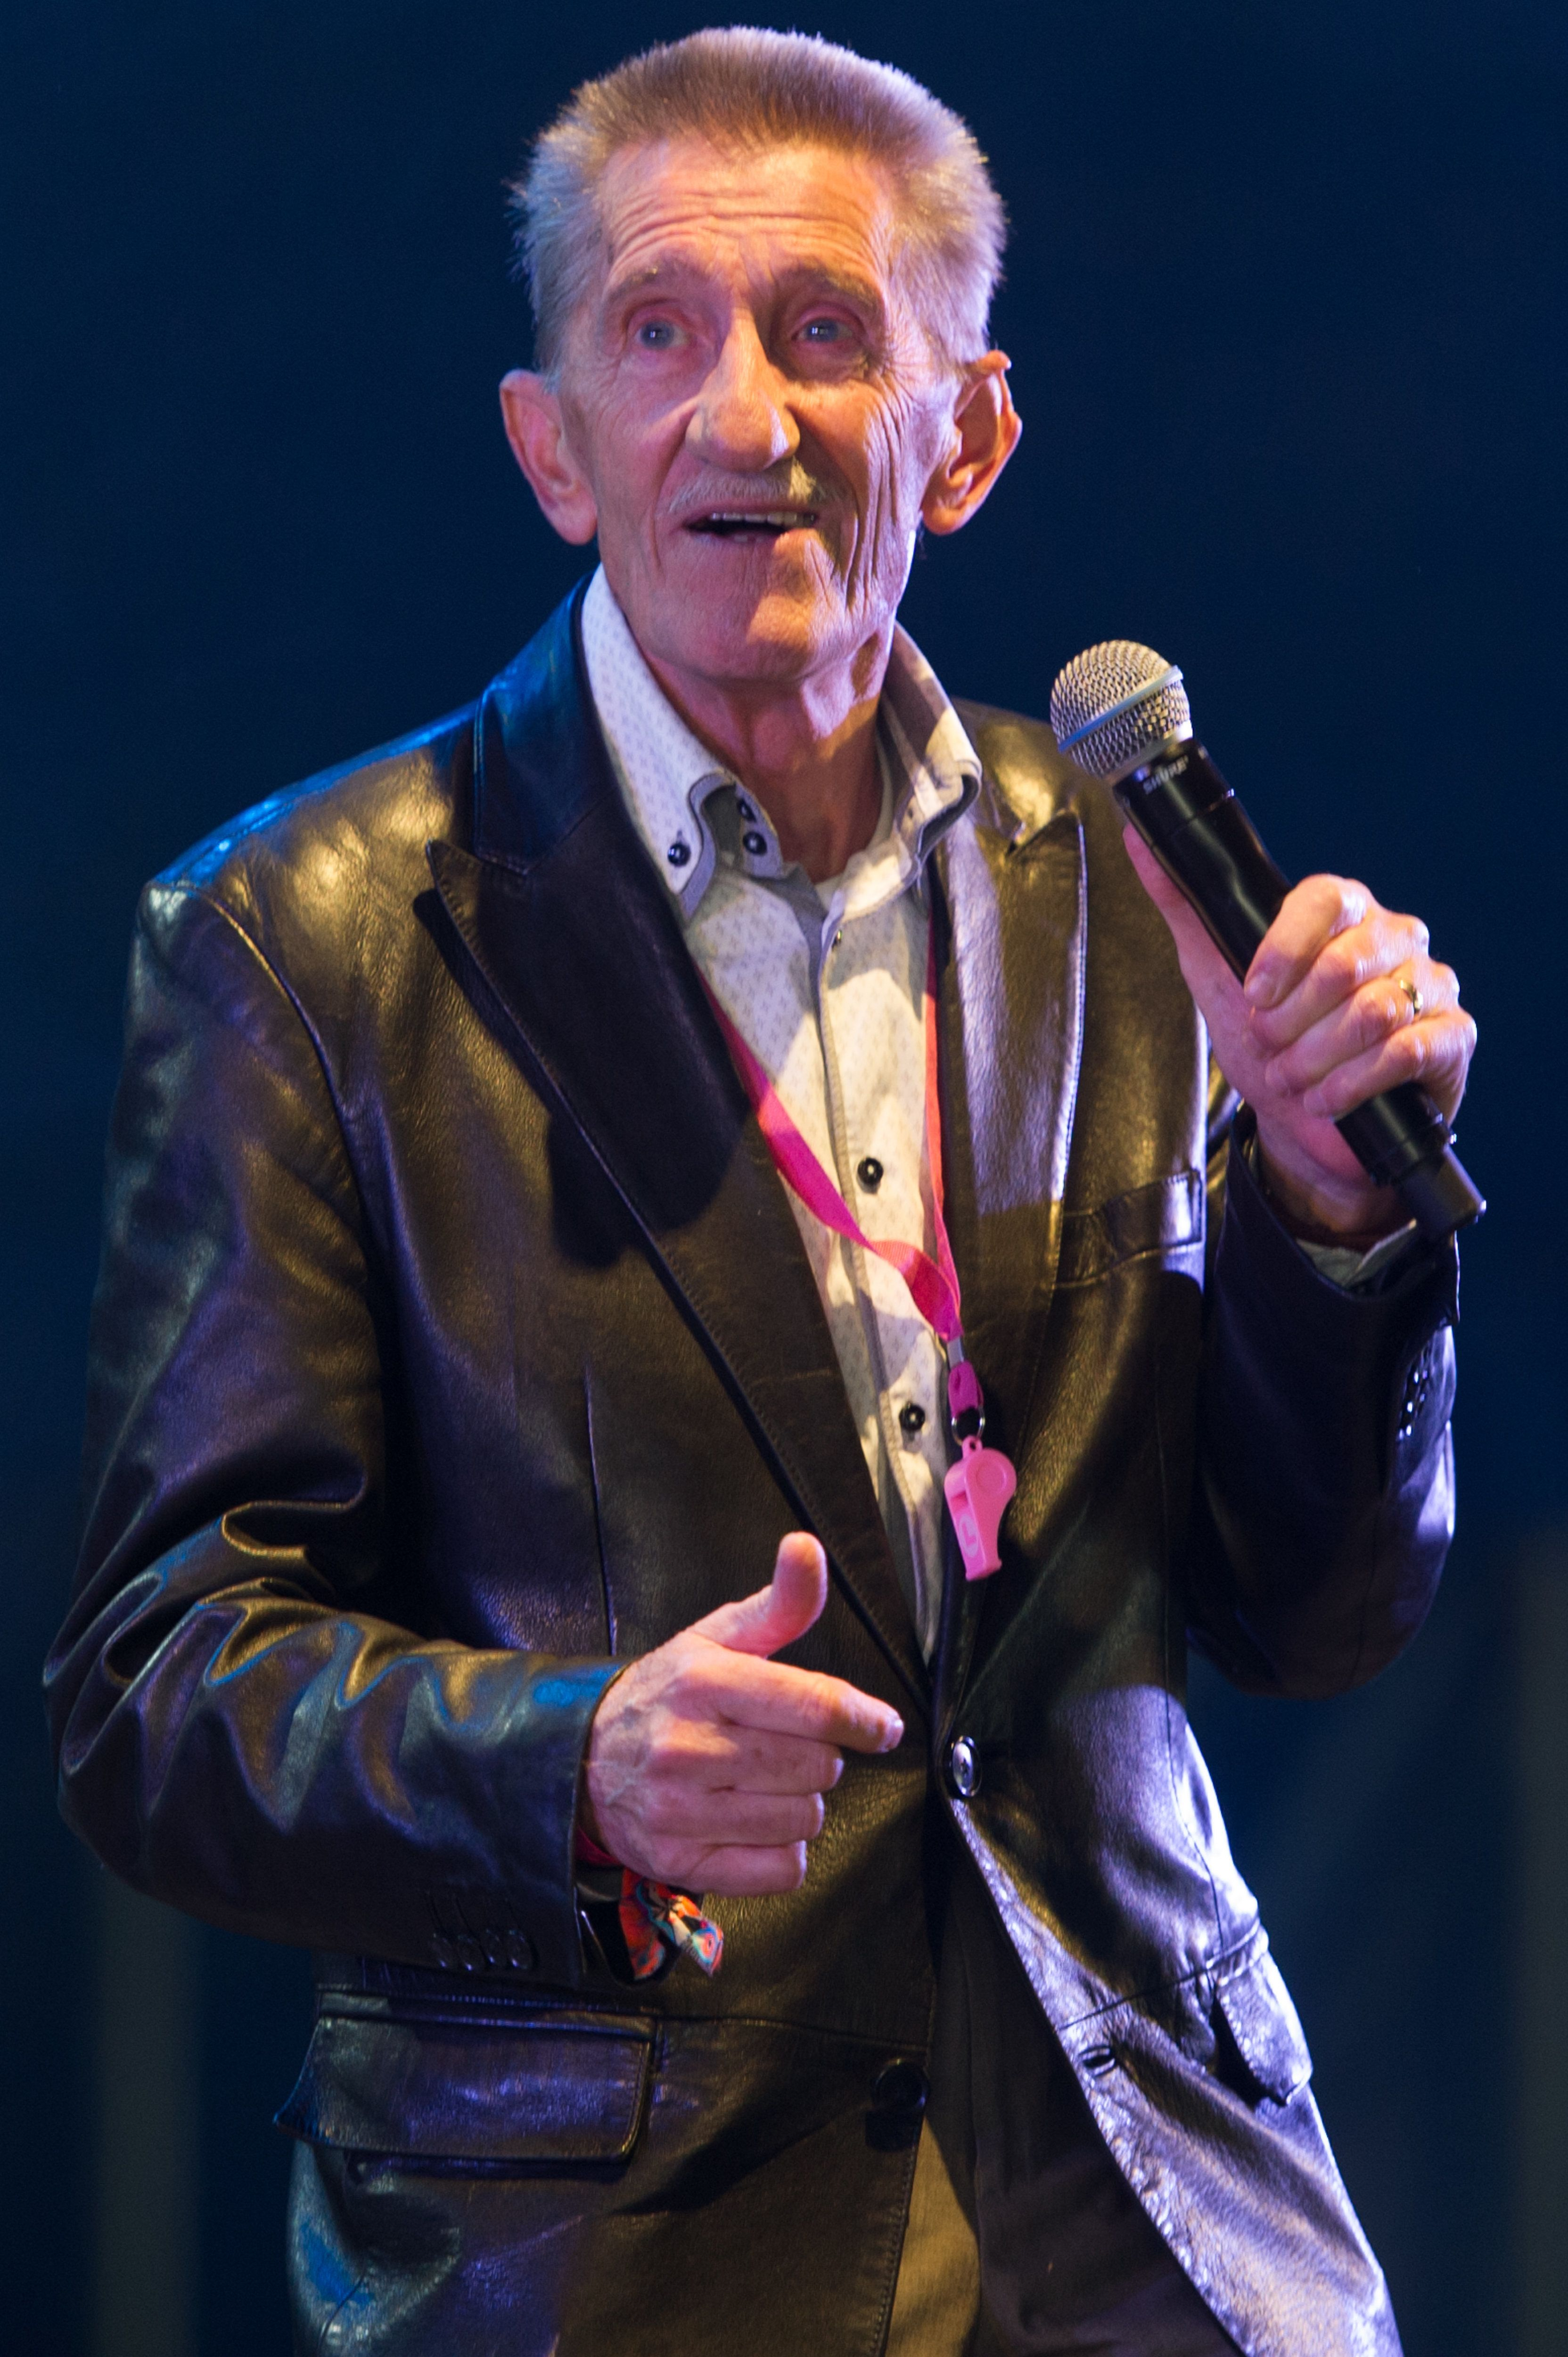 Barry Chuckle Had Bone Cancer Prior To His Death, Brother Jimmy Reveals